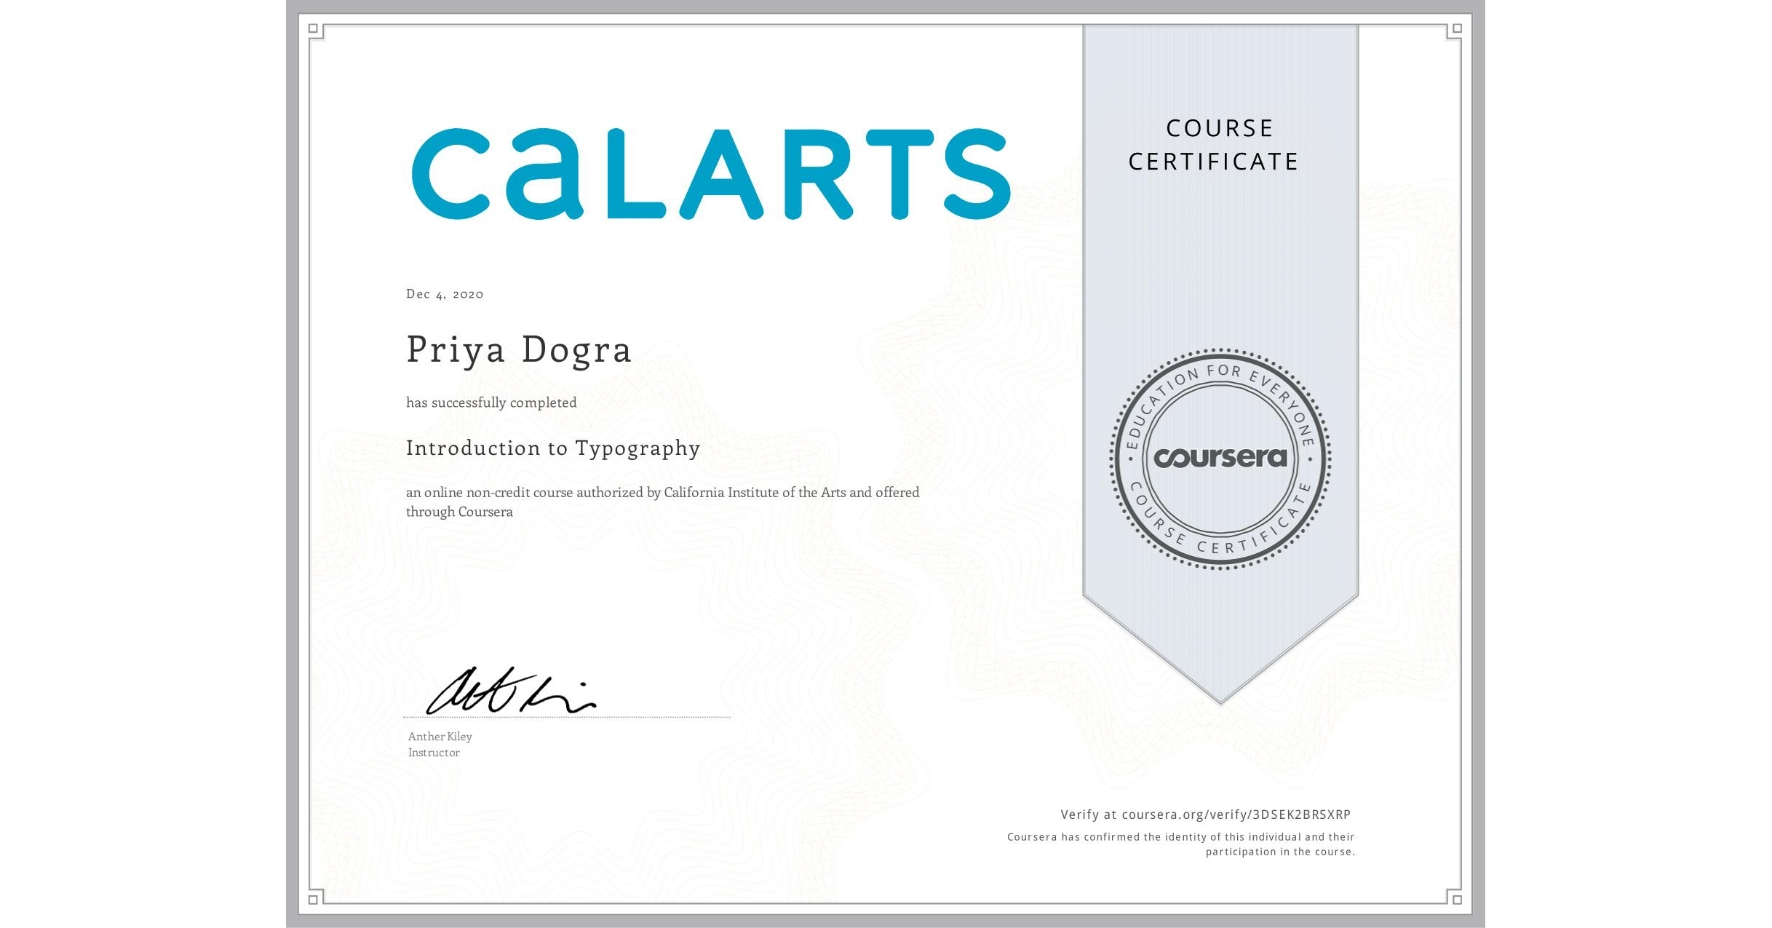 View certificate for Priya Dogra, Introduction to Typography, an online non-credit course authorized by California Institute of the Arts and offered through Coursera